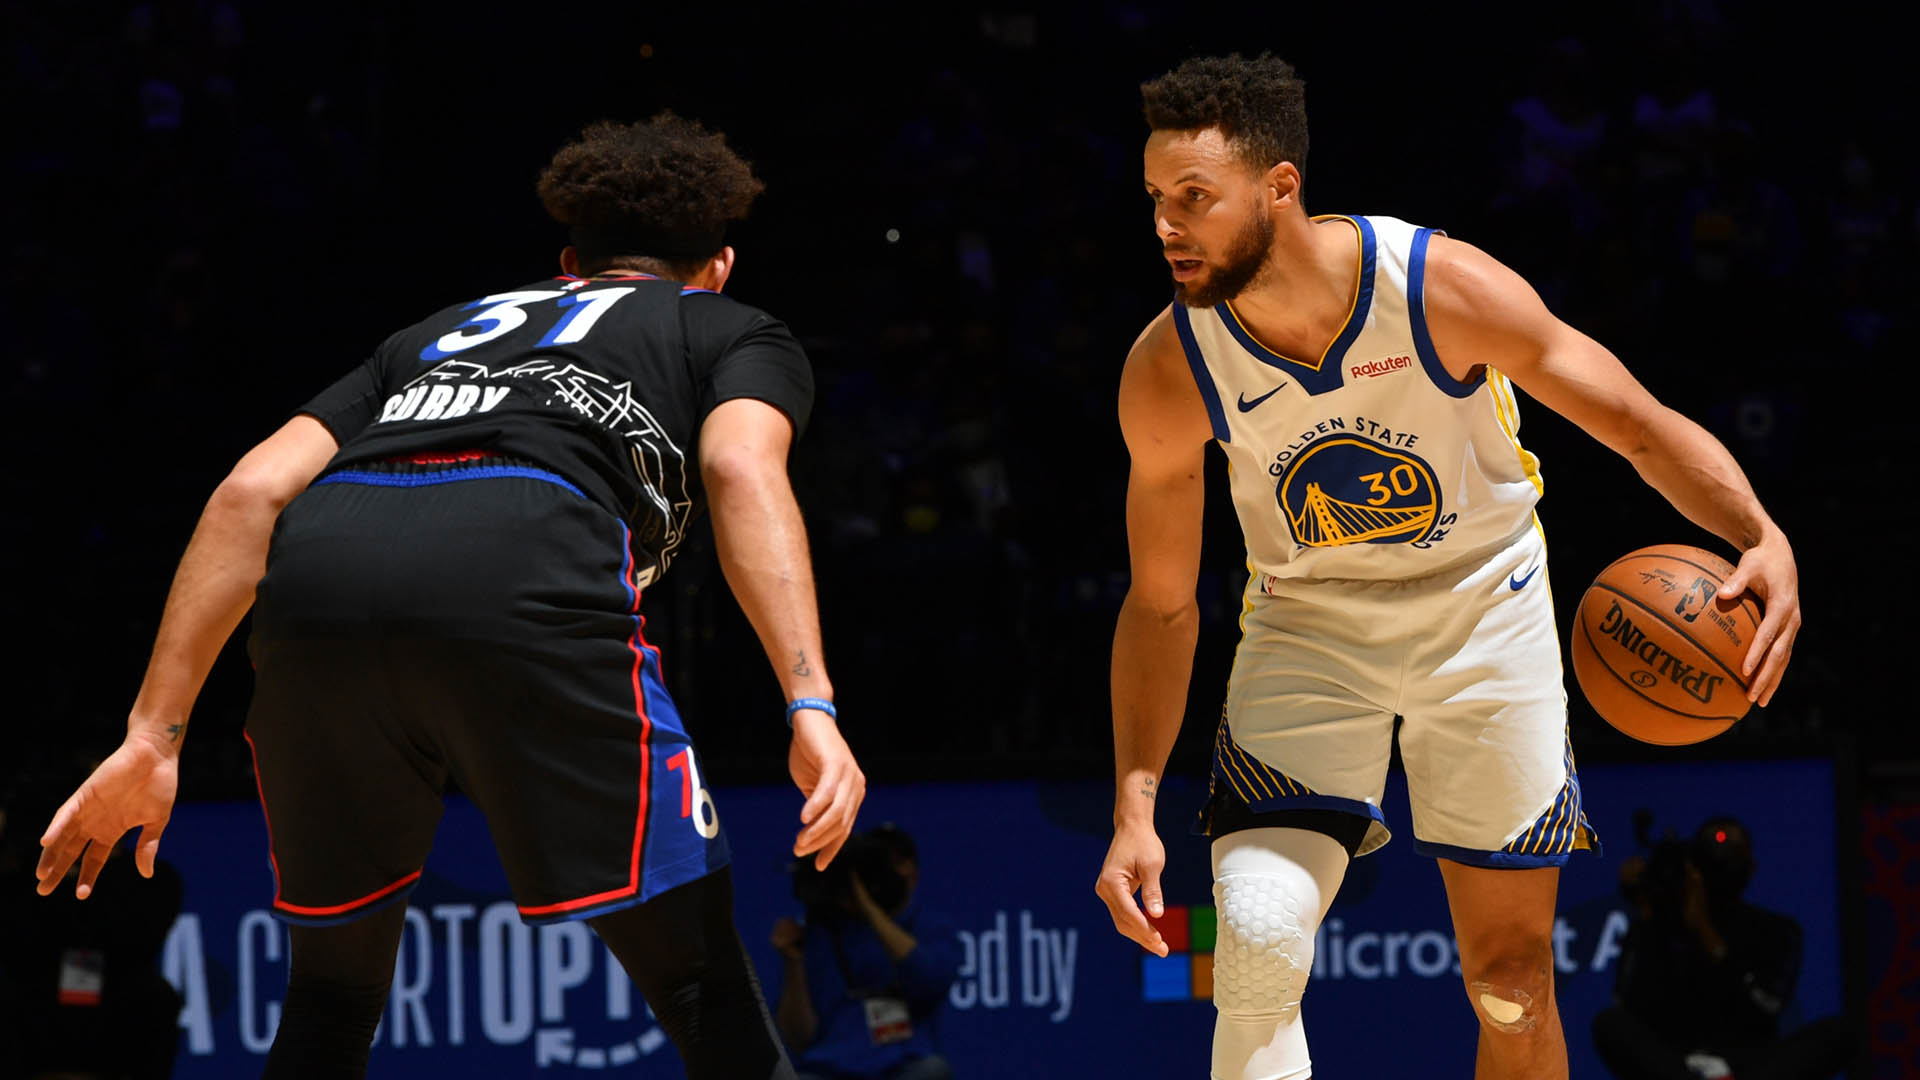 Full Focus: Curry Bros. shine as Warriors drop 76ers